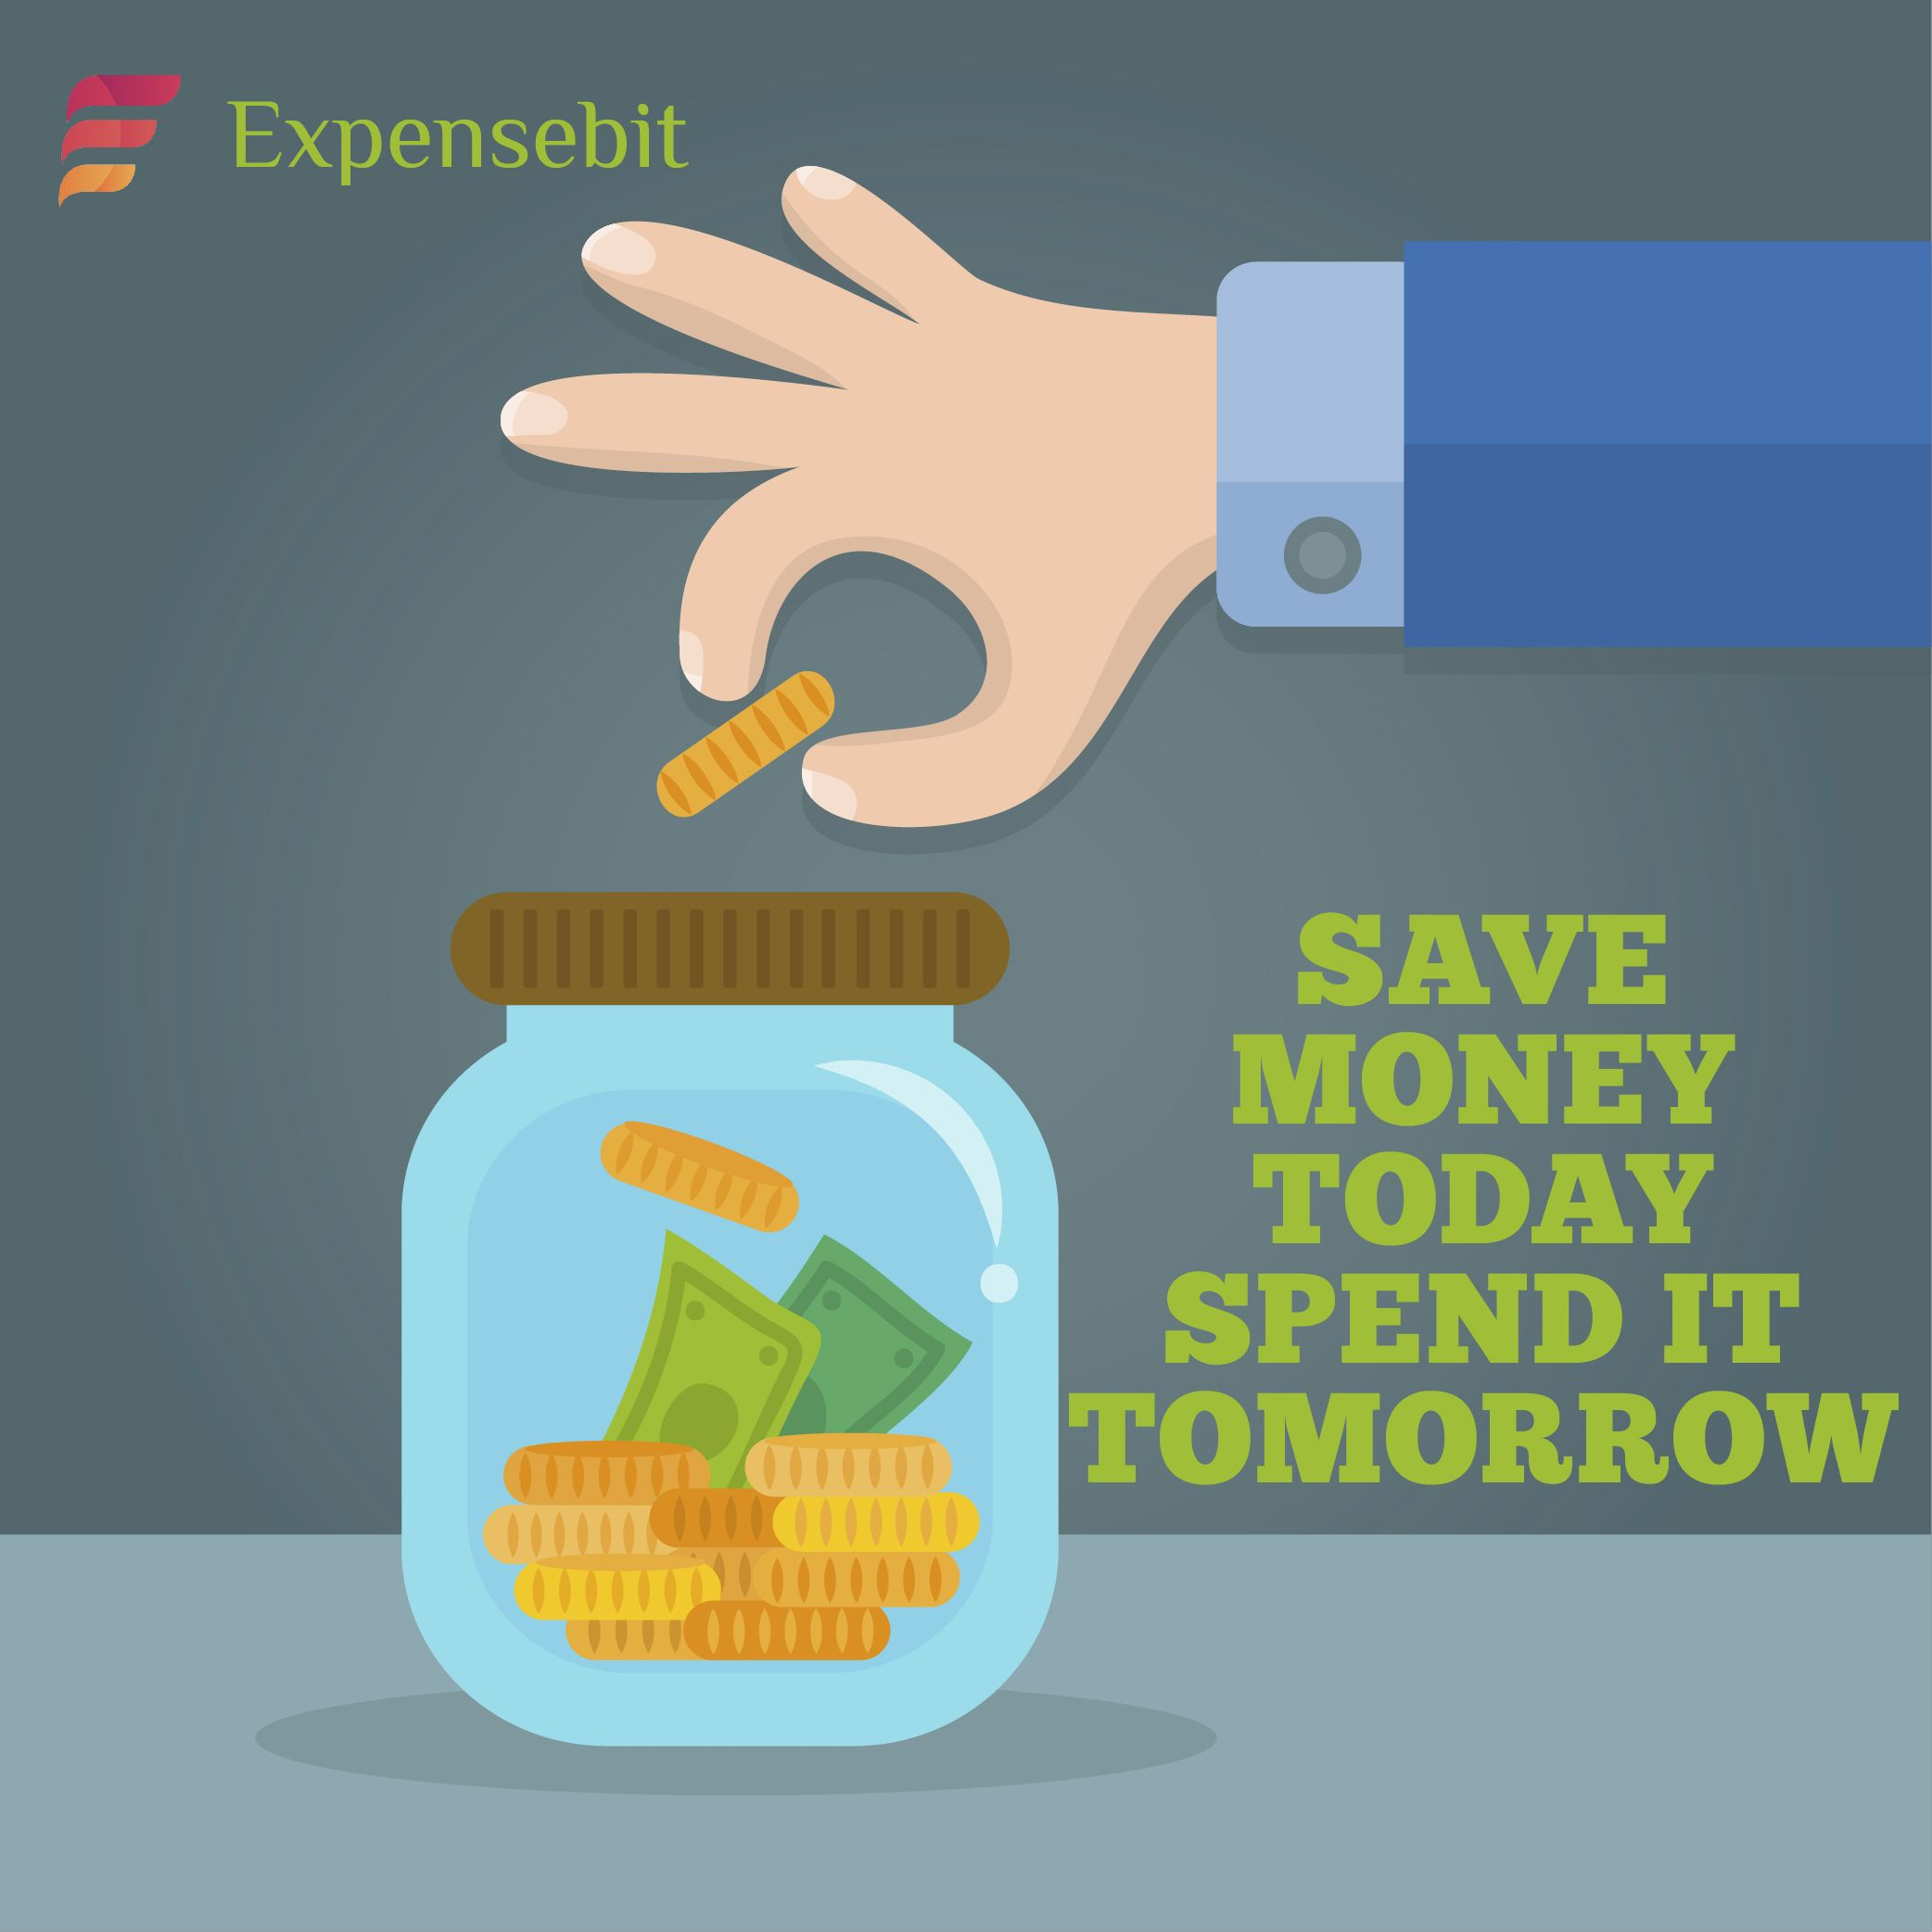 Pin by ExpenseBit Free Daily Expens on Expensebit